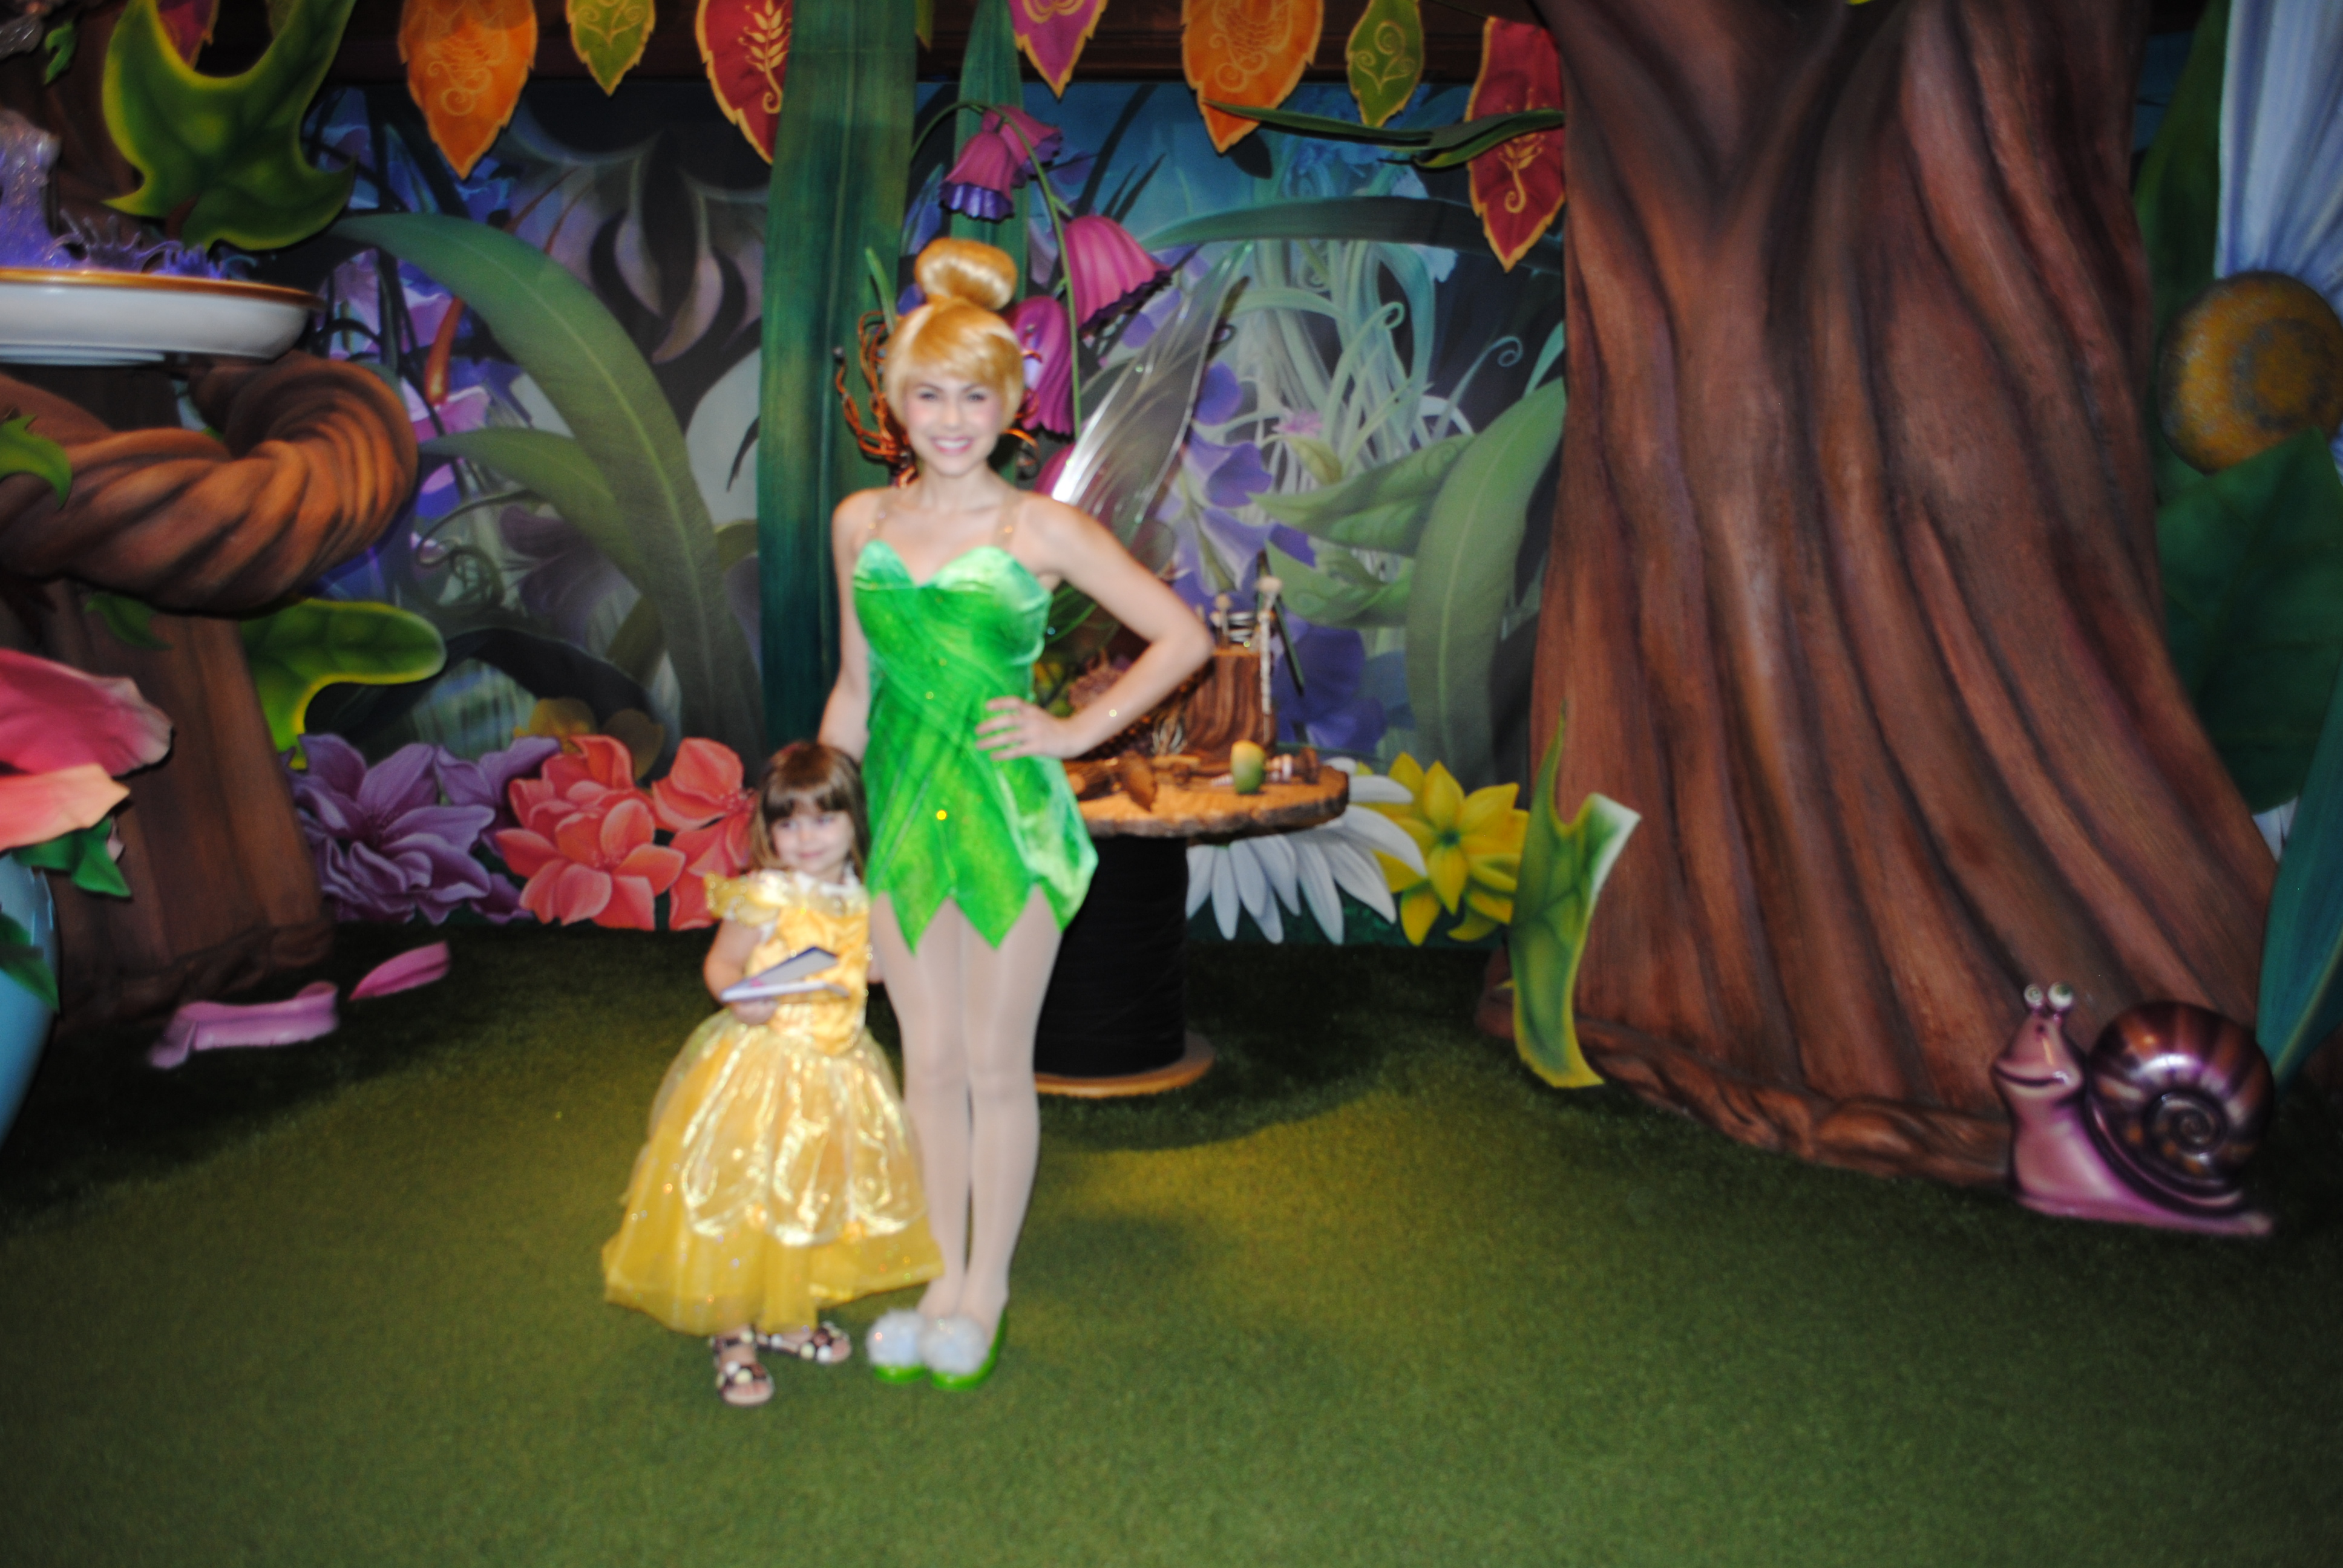 Meet a princess without paying extra for a princess meal besides magic kingdom you can meet many princesses at epcot m4hsunfo